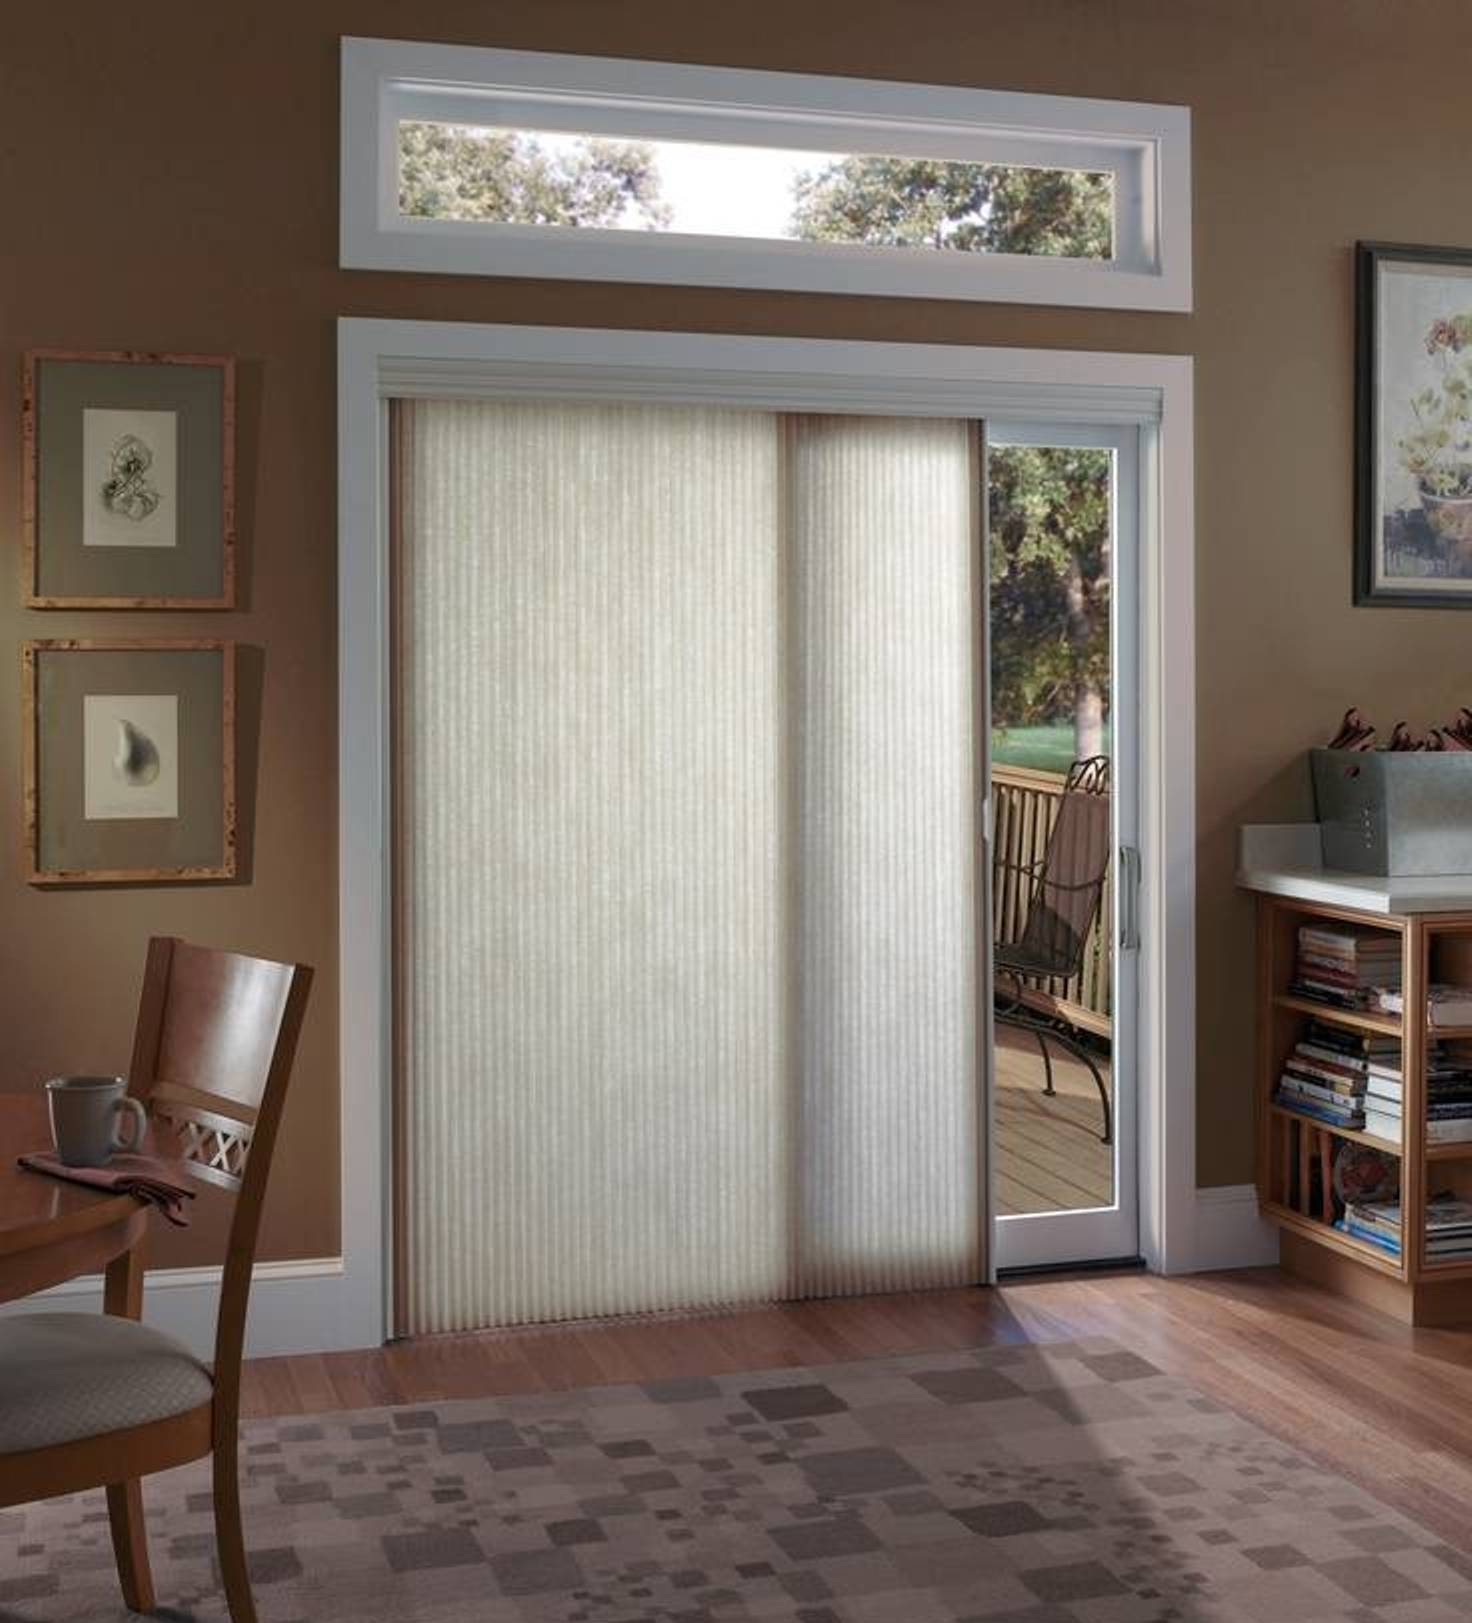 Sliding Patio Door Shadeswoven woods keep a room feeling so bright love the use of them on